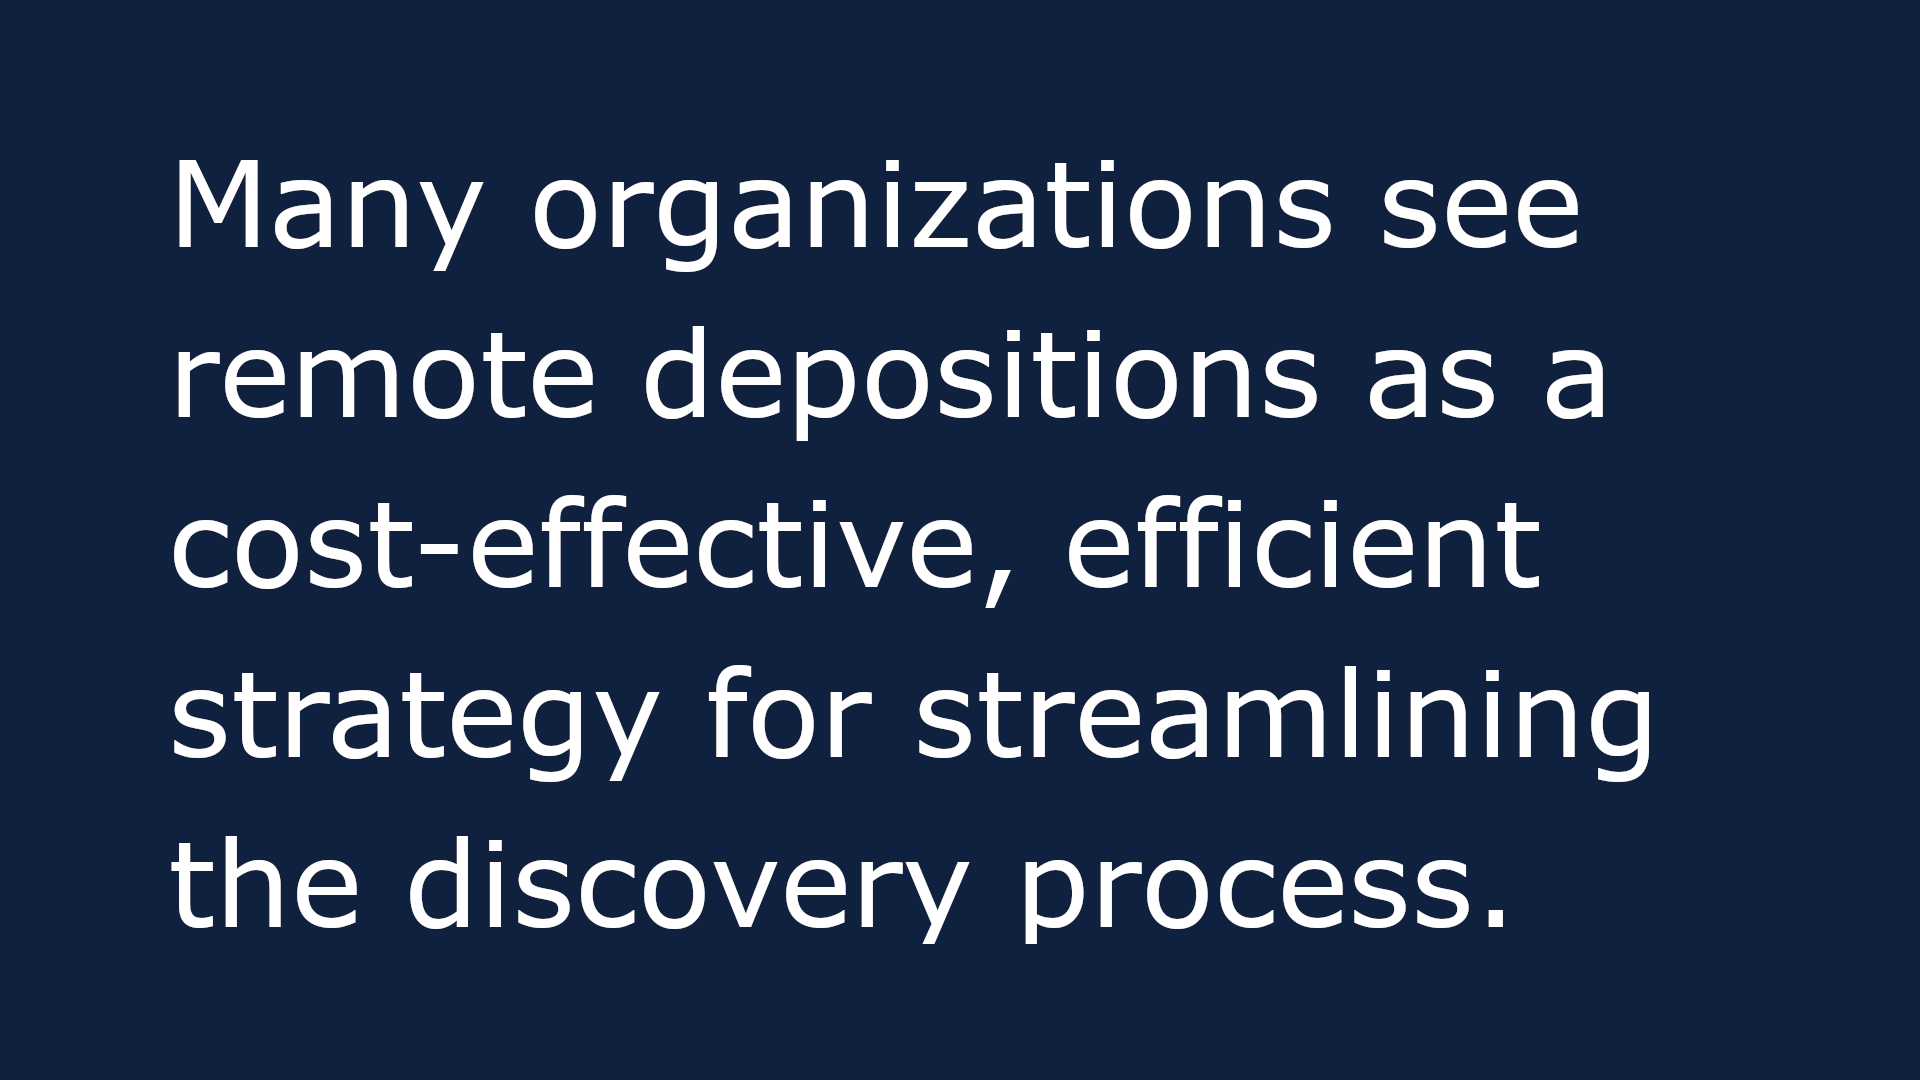 A text-based image that reads: Many organizations see remote depositions as a cost-effective, efficient strategy for streamlining the discovery process.